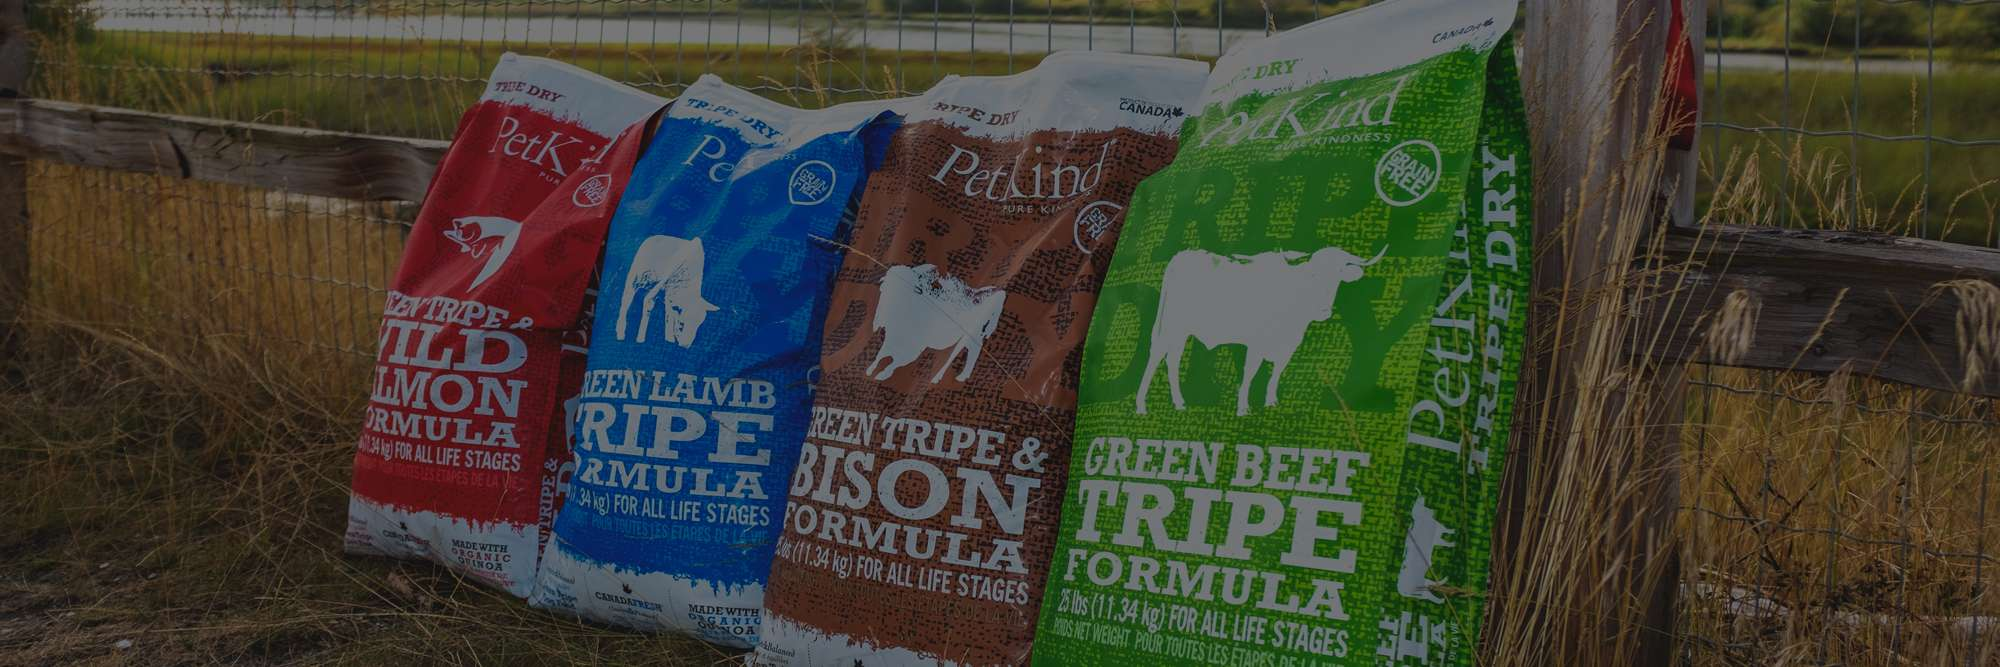 25lb bags of Tripe Dry Green Beef, Green Tripe and Bison, Green Lamb and Green Tripe and Wild Salmon formulas.